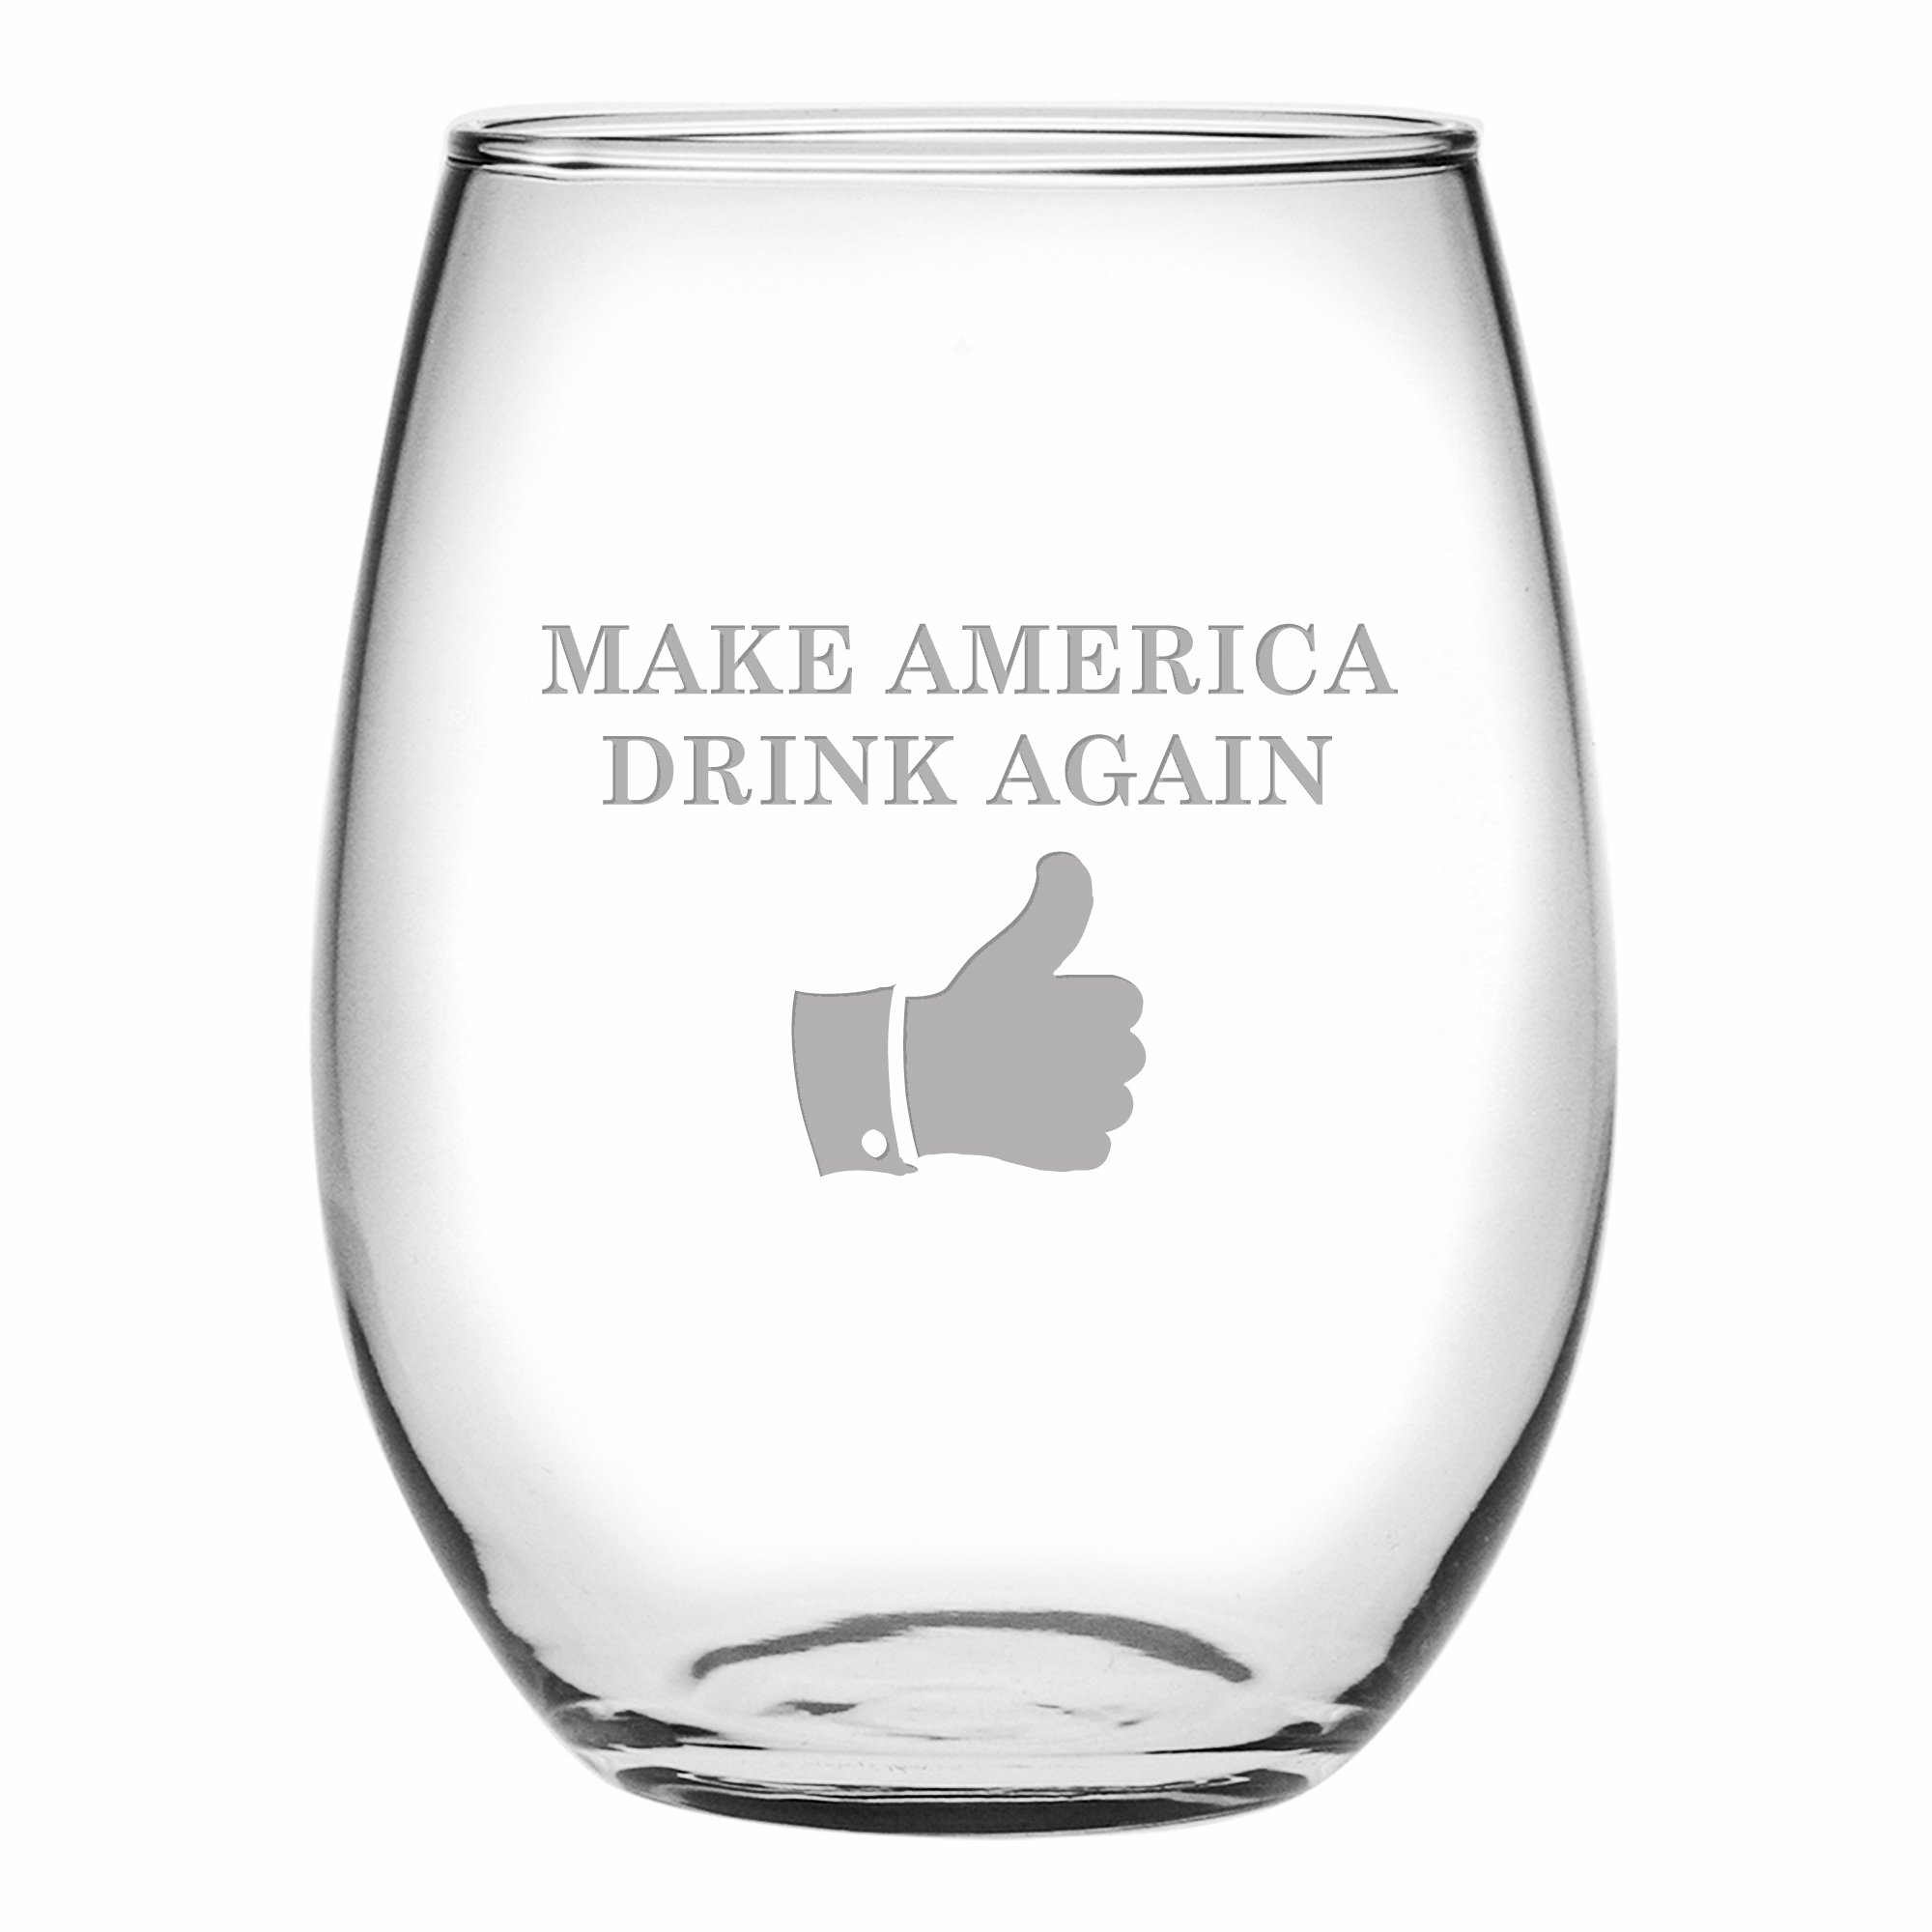 Fineware Make America Drink Again Funny Wine Glass - 15 Oz Etched Stemless Libbey Glass